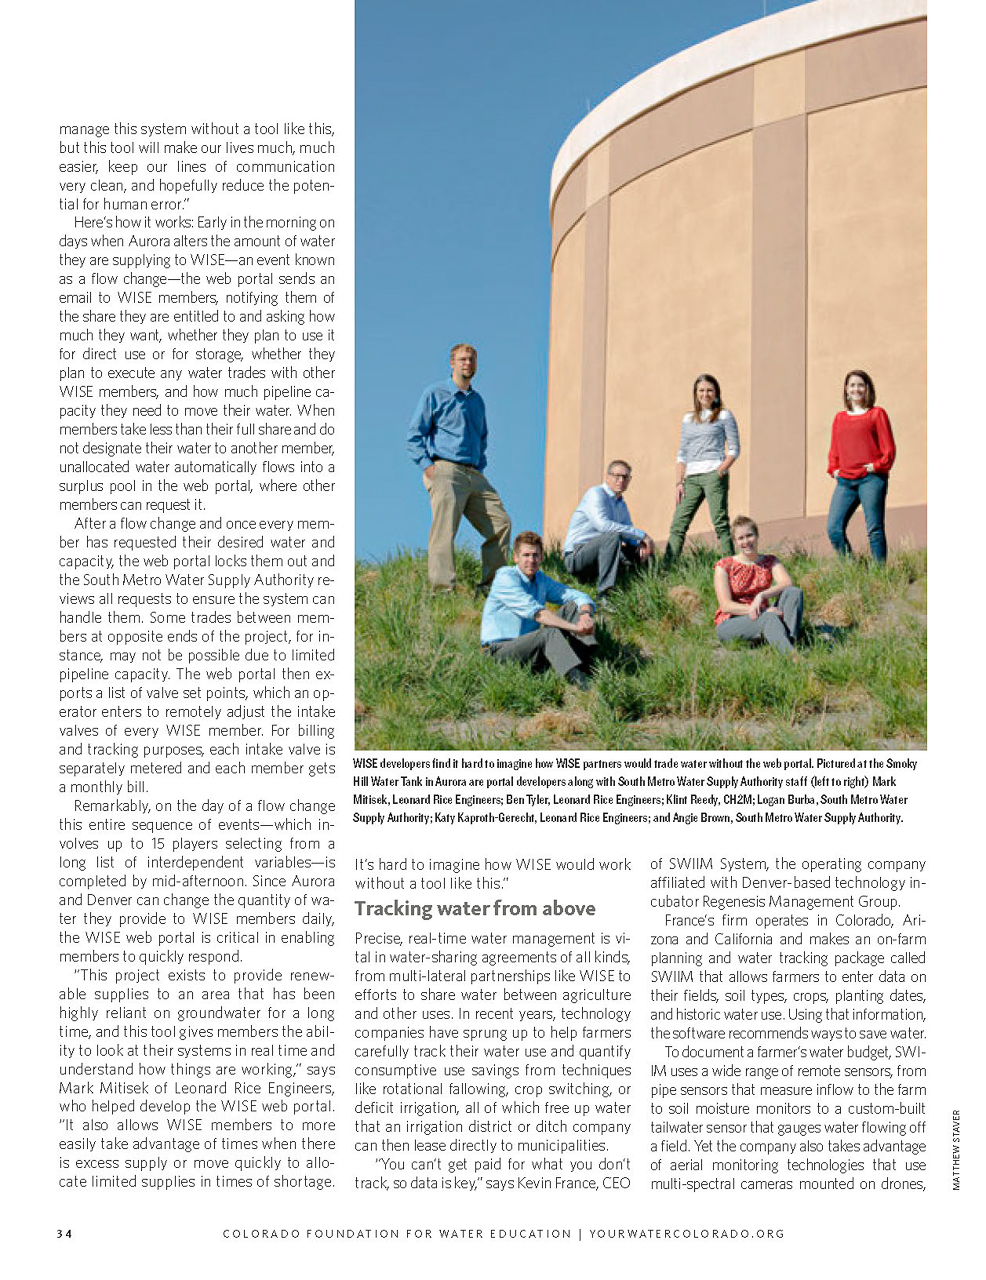 Client: Headwaters Magazine Summer 2017. Photo Matthew Staver. Project: Hire Matthew Staver to photograph WISE developers by coordinating with South Metro Water Supply Authority staff to set up photo shoot. Details: WISE developers find it hard to imagine how WISE partners would trade water without the web portal. Pictured at the Smoky Hill Water Tank in Aurora are portal developers along with South Metro Water Supply Authority staff (left to right) Mark Mitisek, Leonard Rice Engineers; Ben Tyler, Leonard Rice Engineers; Klint Reedy, CH2M; Logan Burba, South Metro Water Supply Authority; Katy Kaproth-Gerecht, Leonard Rice Engineers; and Angie Brown, South Metro Water Supply Authority.